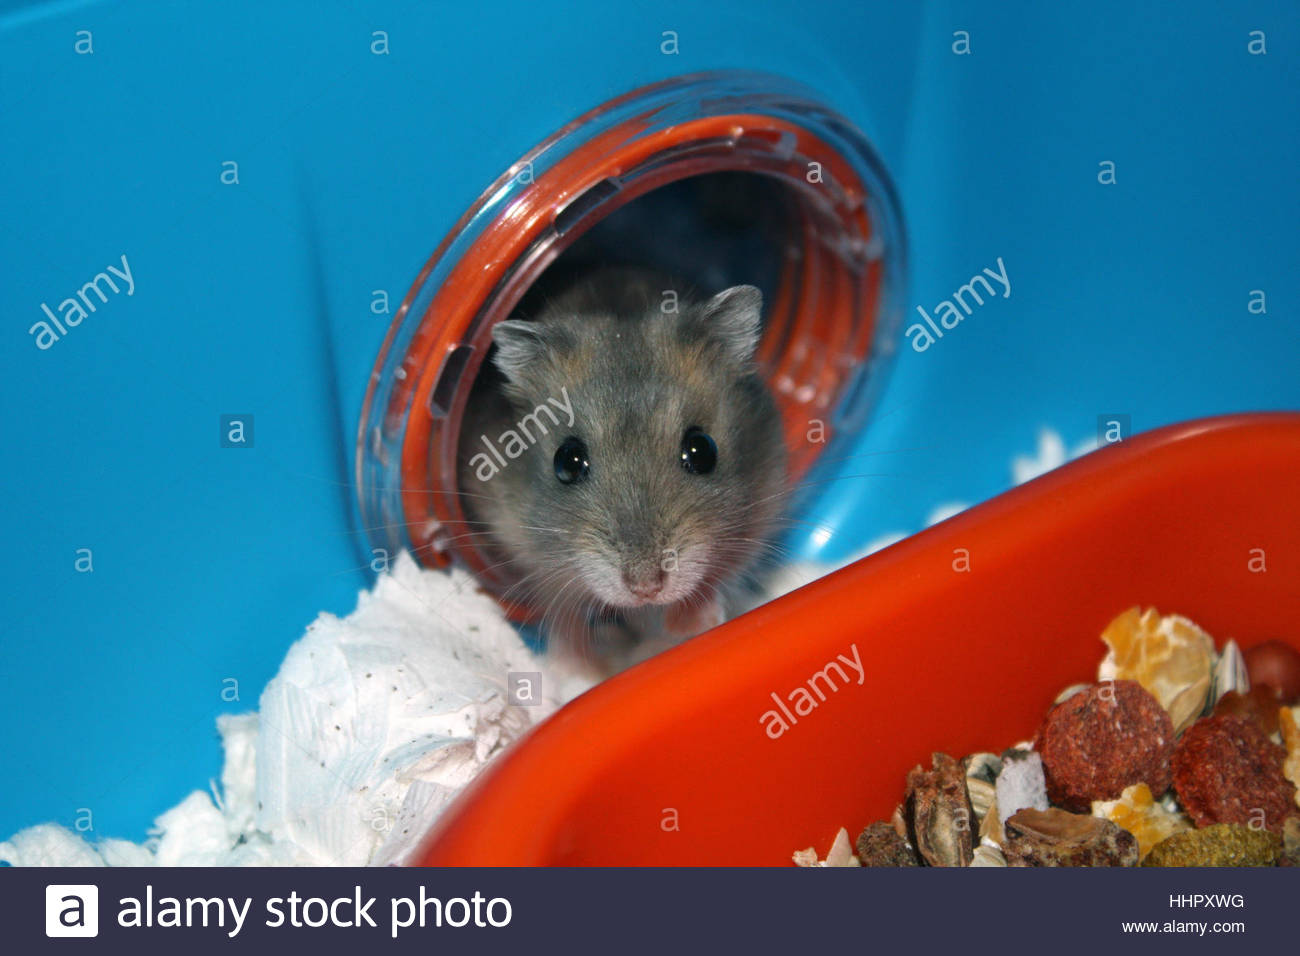 animal, claw, dwarf, cage, maddening, pert, coquettish, cute, eating, eat, - Stock Image